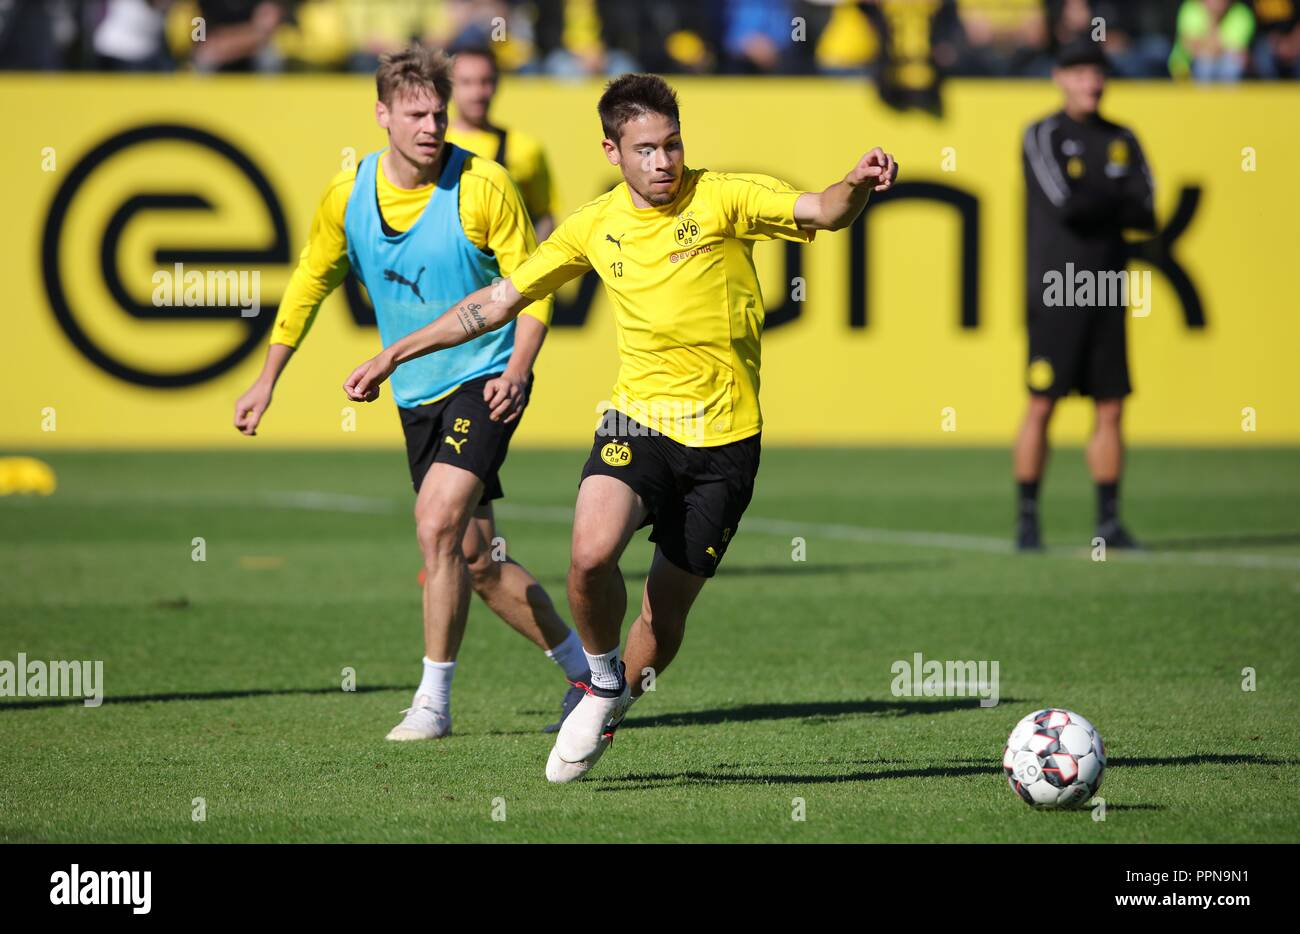 firo: 27.09.2018, football, 1.Bundesliga, season 2018/2019, BVB, Borussia Dortmund, training, GUERREIRO | usage worldwide - Stock Image